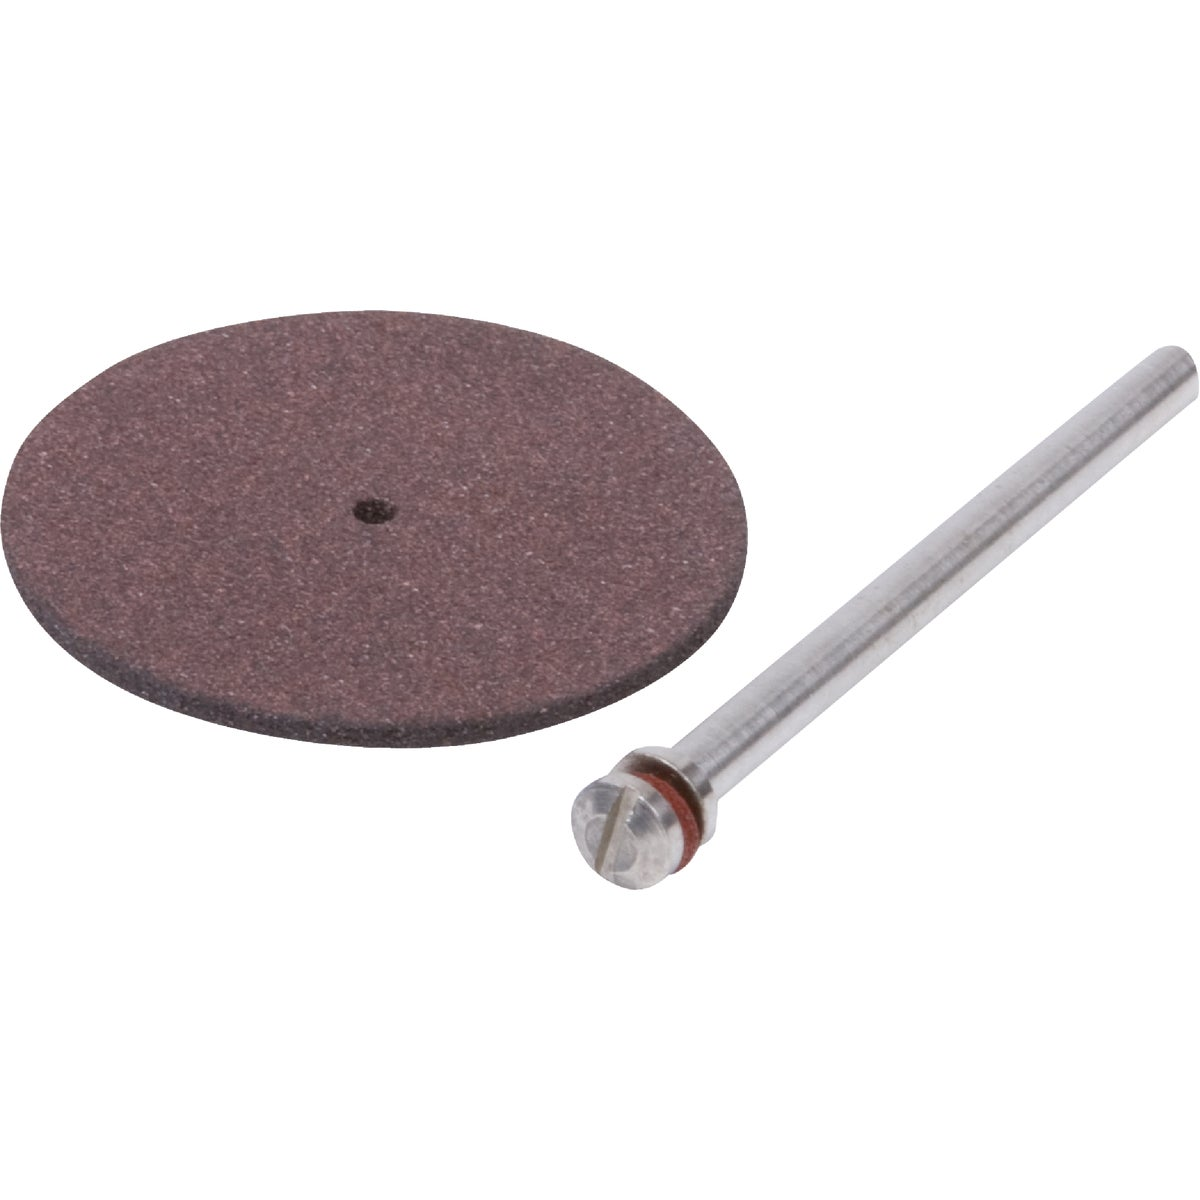 Forney 60222 Cut Off Wheel Kit with 1/8-Inch Mandrel, 1-1/4-Inch, 2-Piece